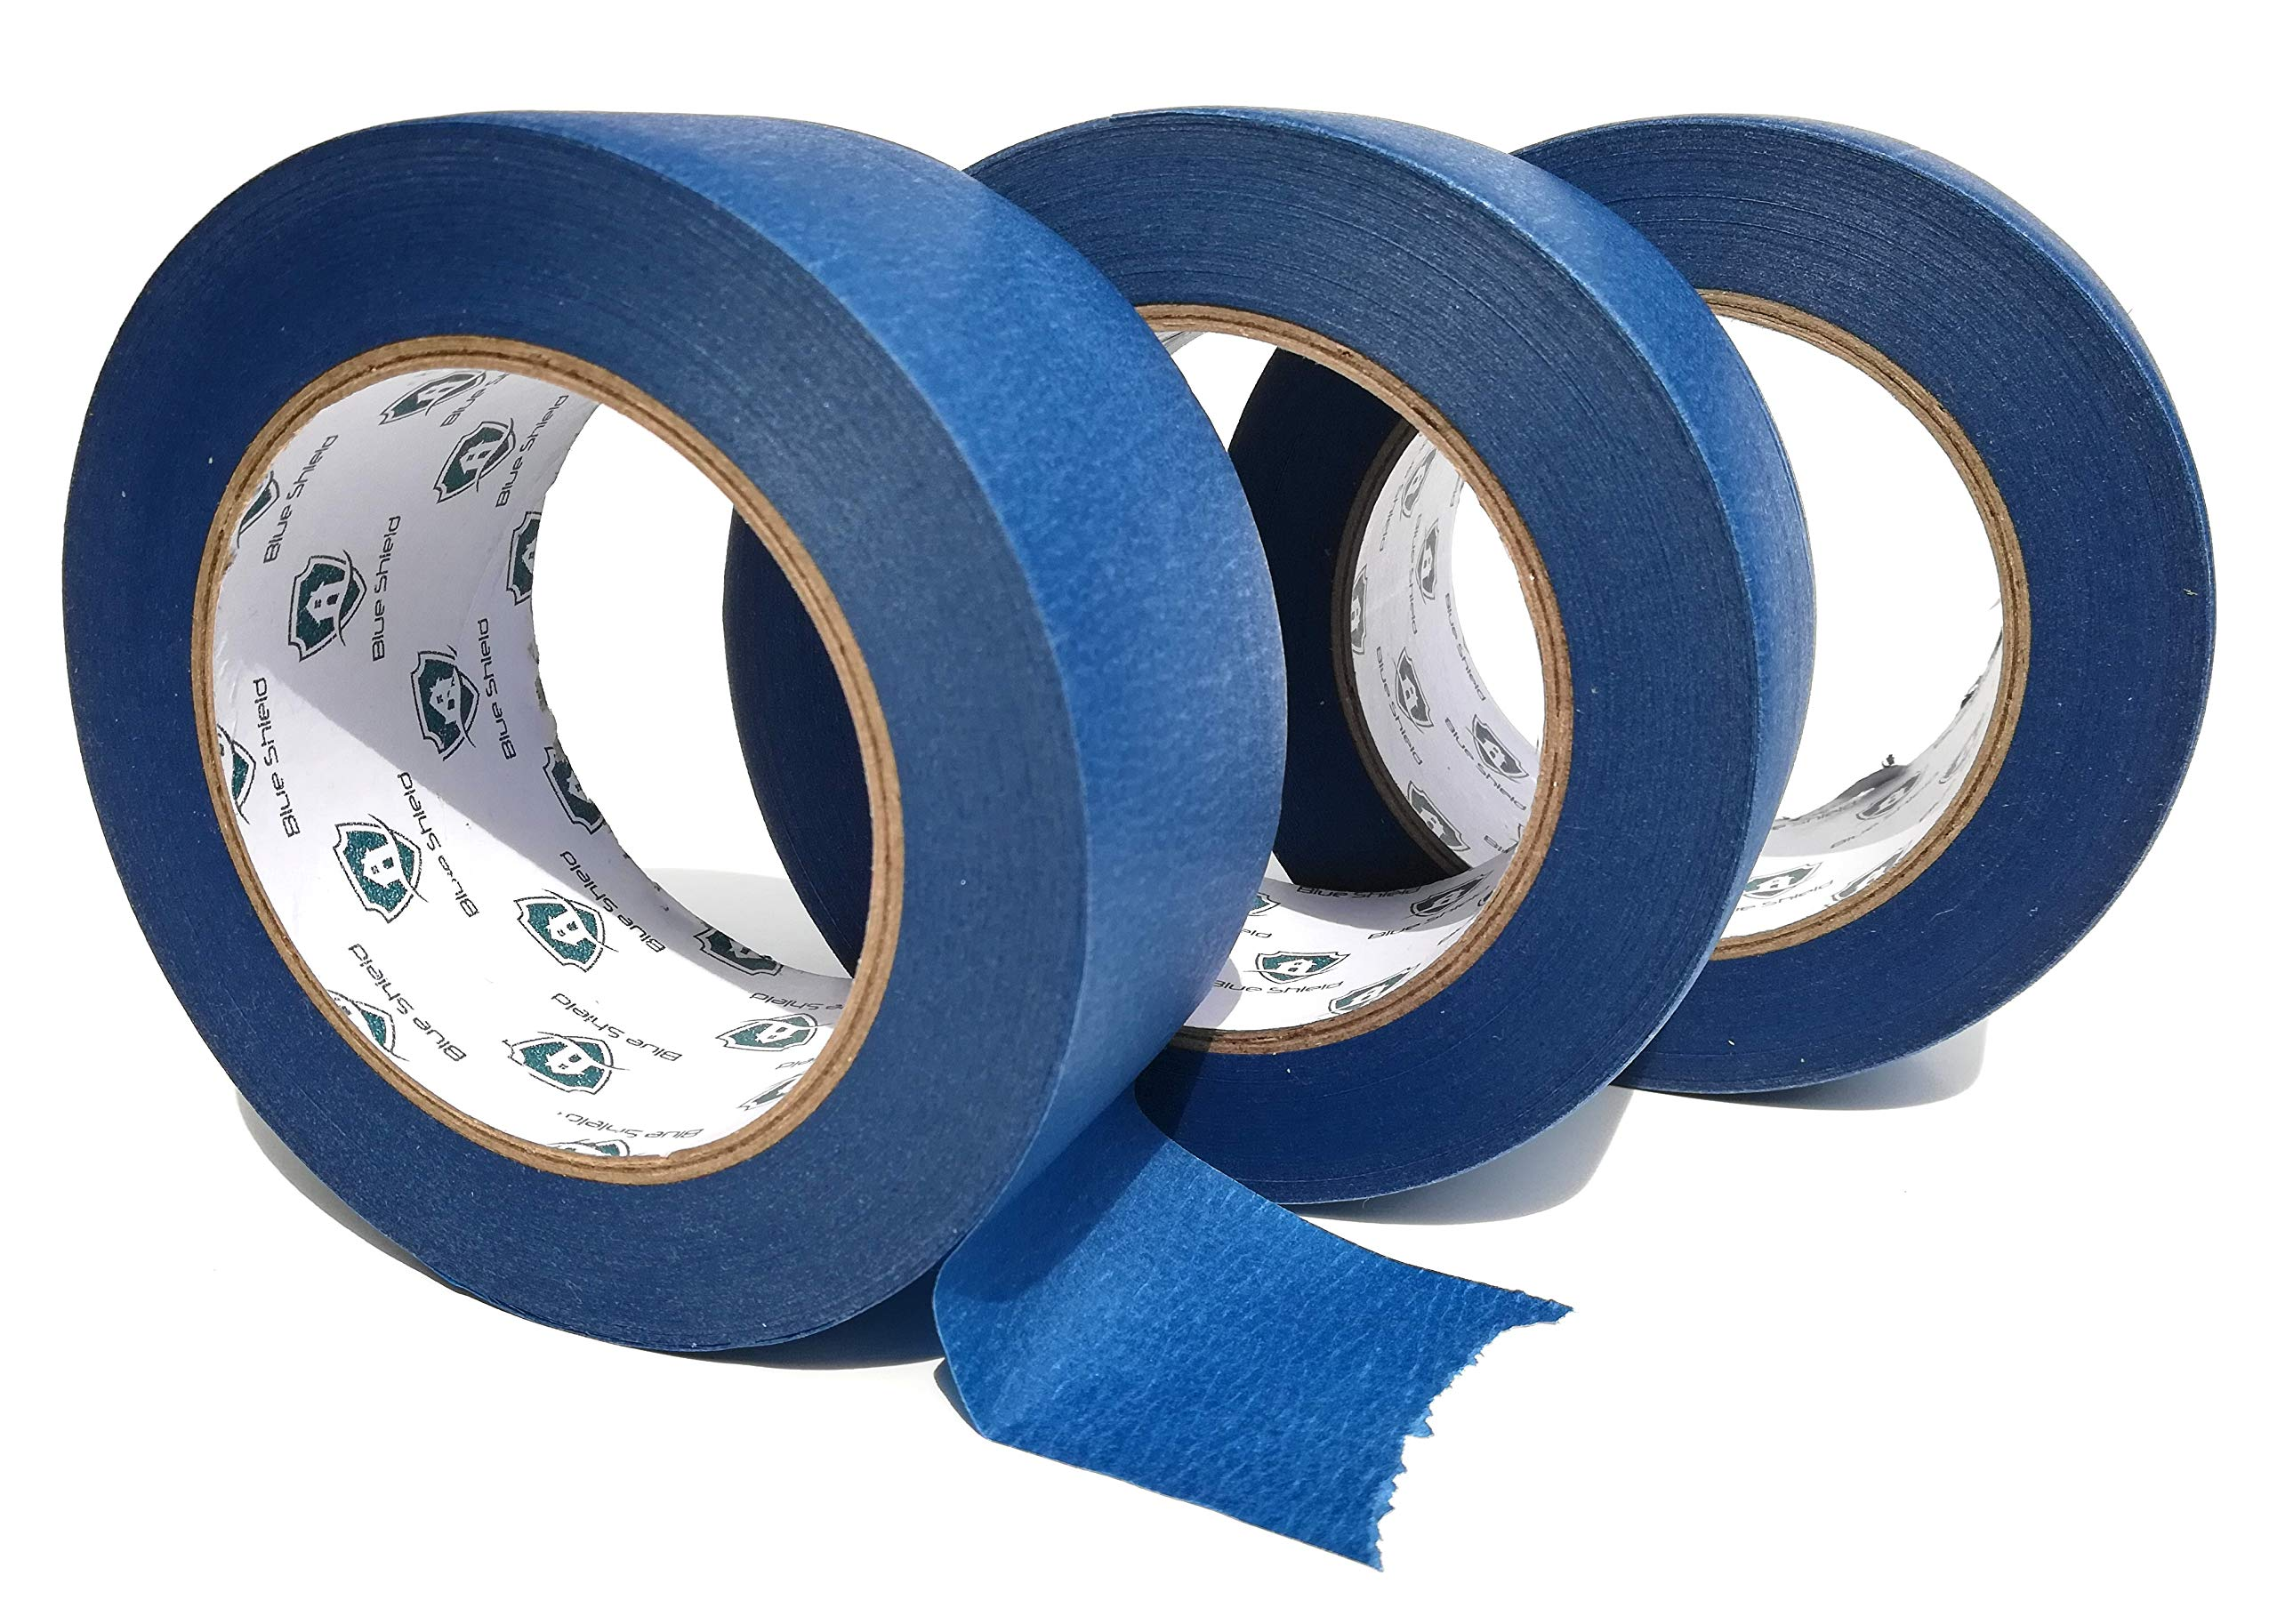 2'' X 60 Yards 3 Pack (180 Total) Professional Painters Masking Tape by BLUE SHIELD Easy Tare Crepe Paper, Sharp Paint Lines, Long Lasting Adhesive, Bleed Proof, Residue Free, Indoor/Outdoor Home/Auto